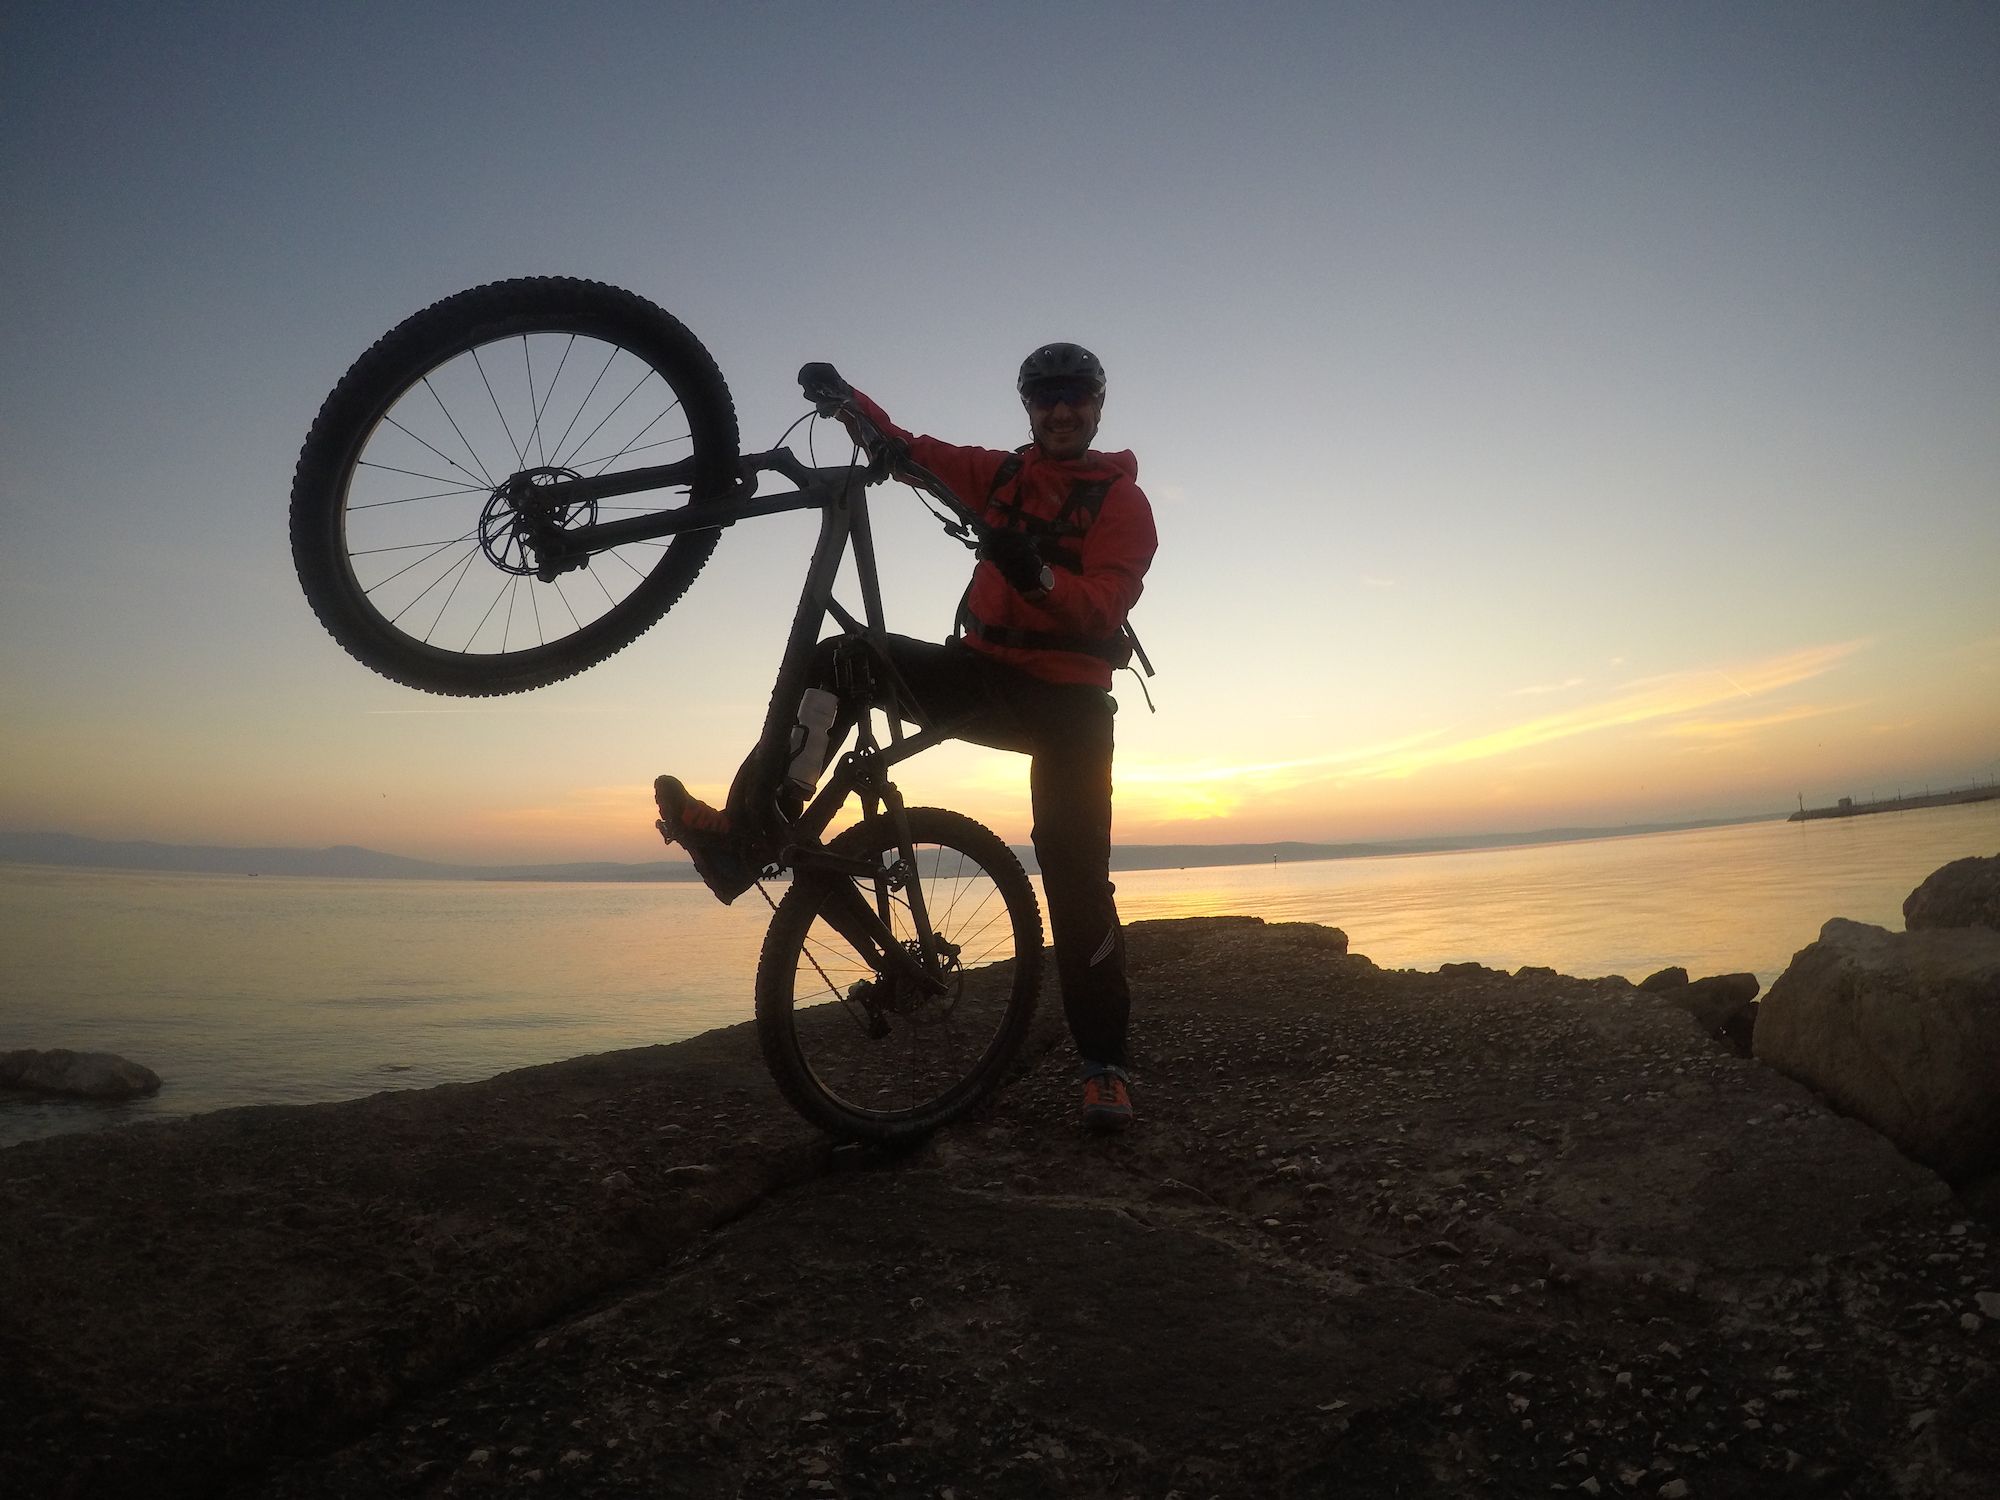 sunset with bike at adriatic sea